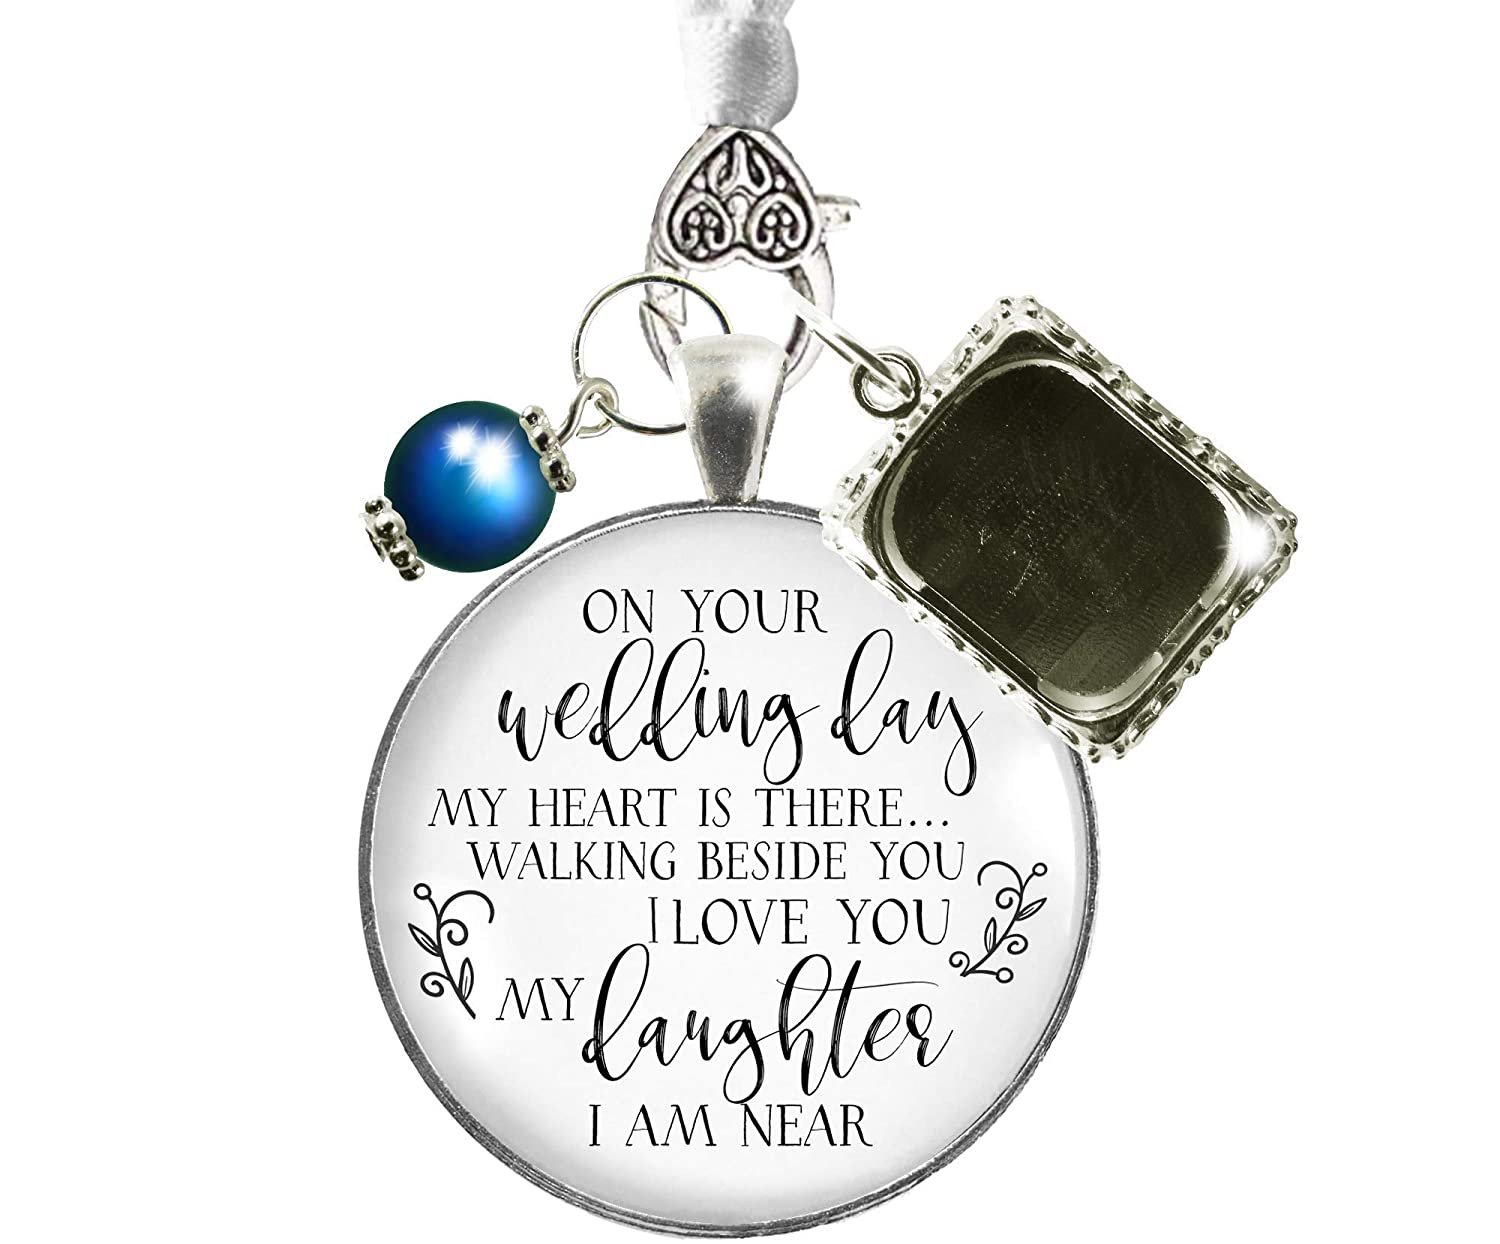 Bouquet Charm On Your Wedding Day Mom Dad White Silvertone Blue Memorial Photo Frame